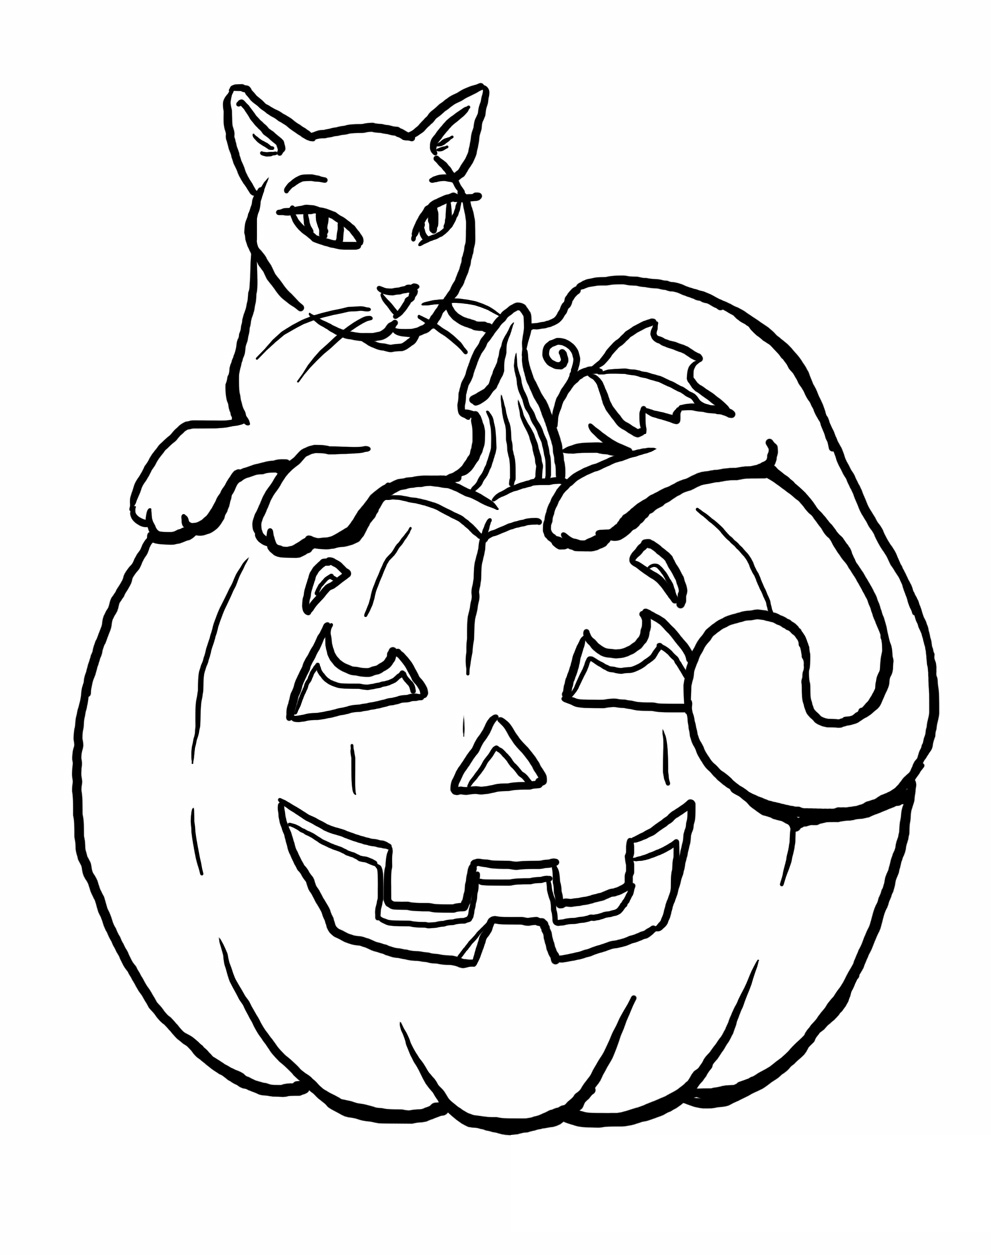 Halloween Cat With Pumpkin Coloring Pages Png 991 1 255 Pixels Halloween Coloring Pages Printable Halloween Coloring Pages Cat Coloring Page